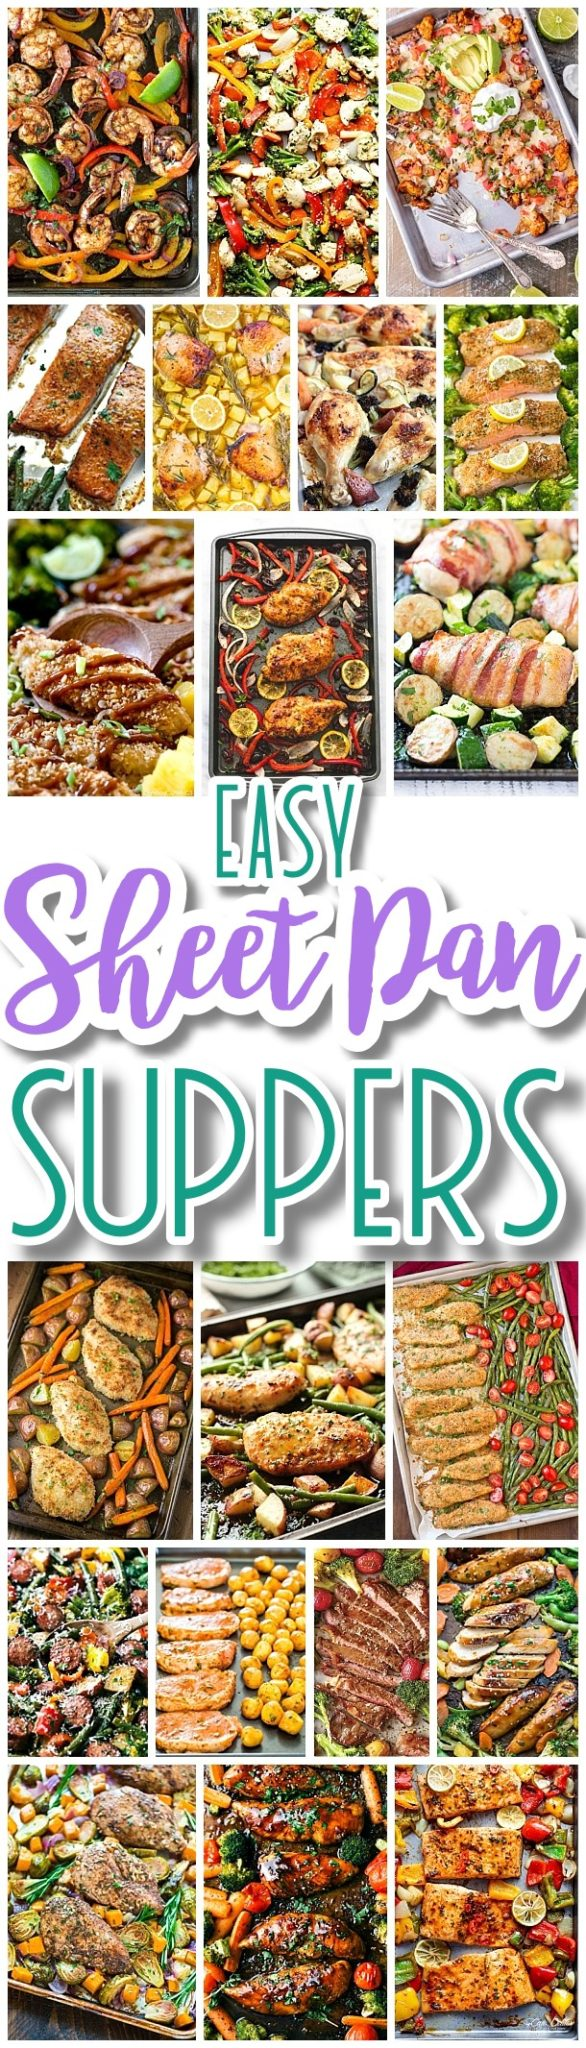 The BEST Sheet Pan Suppers Recipes – Easy and Quick Baked Family Lunch and Simple Dinner Meal Ideas using only ONE Baking Sheet PAN! #sheetpansuppers The BEST Sheet Pan Suppers Recipes – Easy and Quick Baked Family Lunch and Simple Dinner Meal Ideas using only ONE Baking Sheet PAN! – Dreaming in DIY #sheetpansuppers The BEST Sheet Pan Suppers Recipes – Easy and Quick Baked Family Lunch and Simple Dinner Meal Ideas using only ONE Baking Sheet PAN! #sheetpansuppers The BEST Sheet Pan Suppe #sheetpansuppers